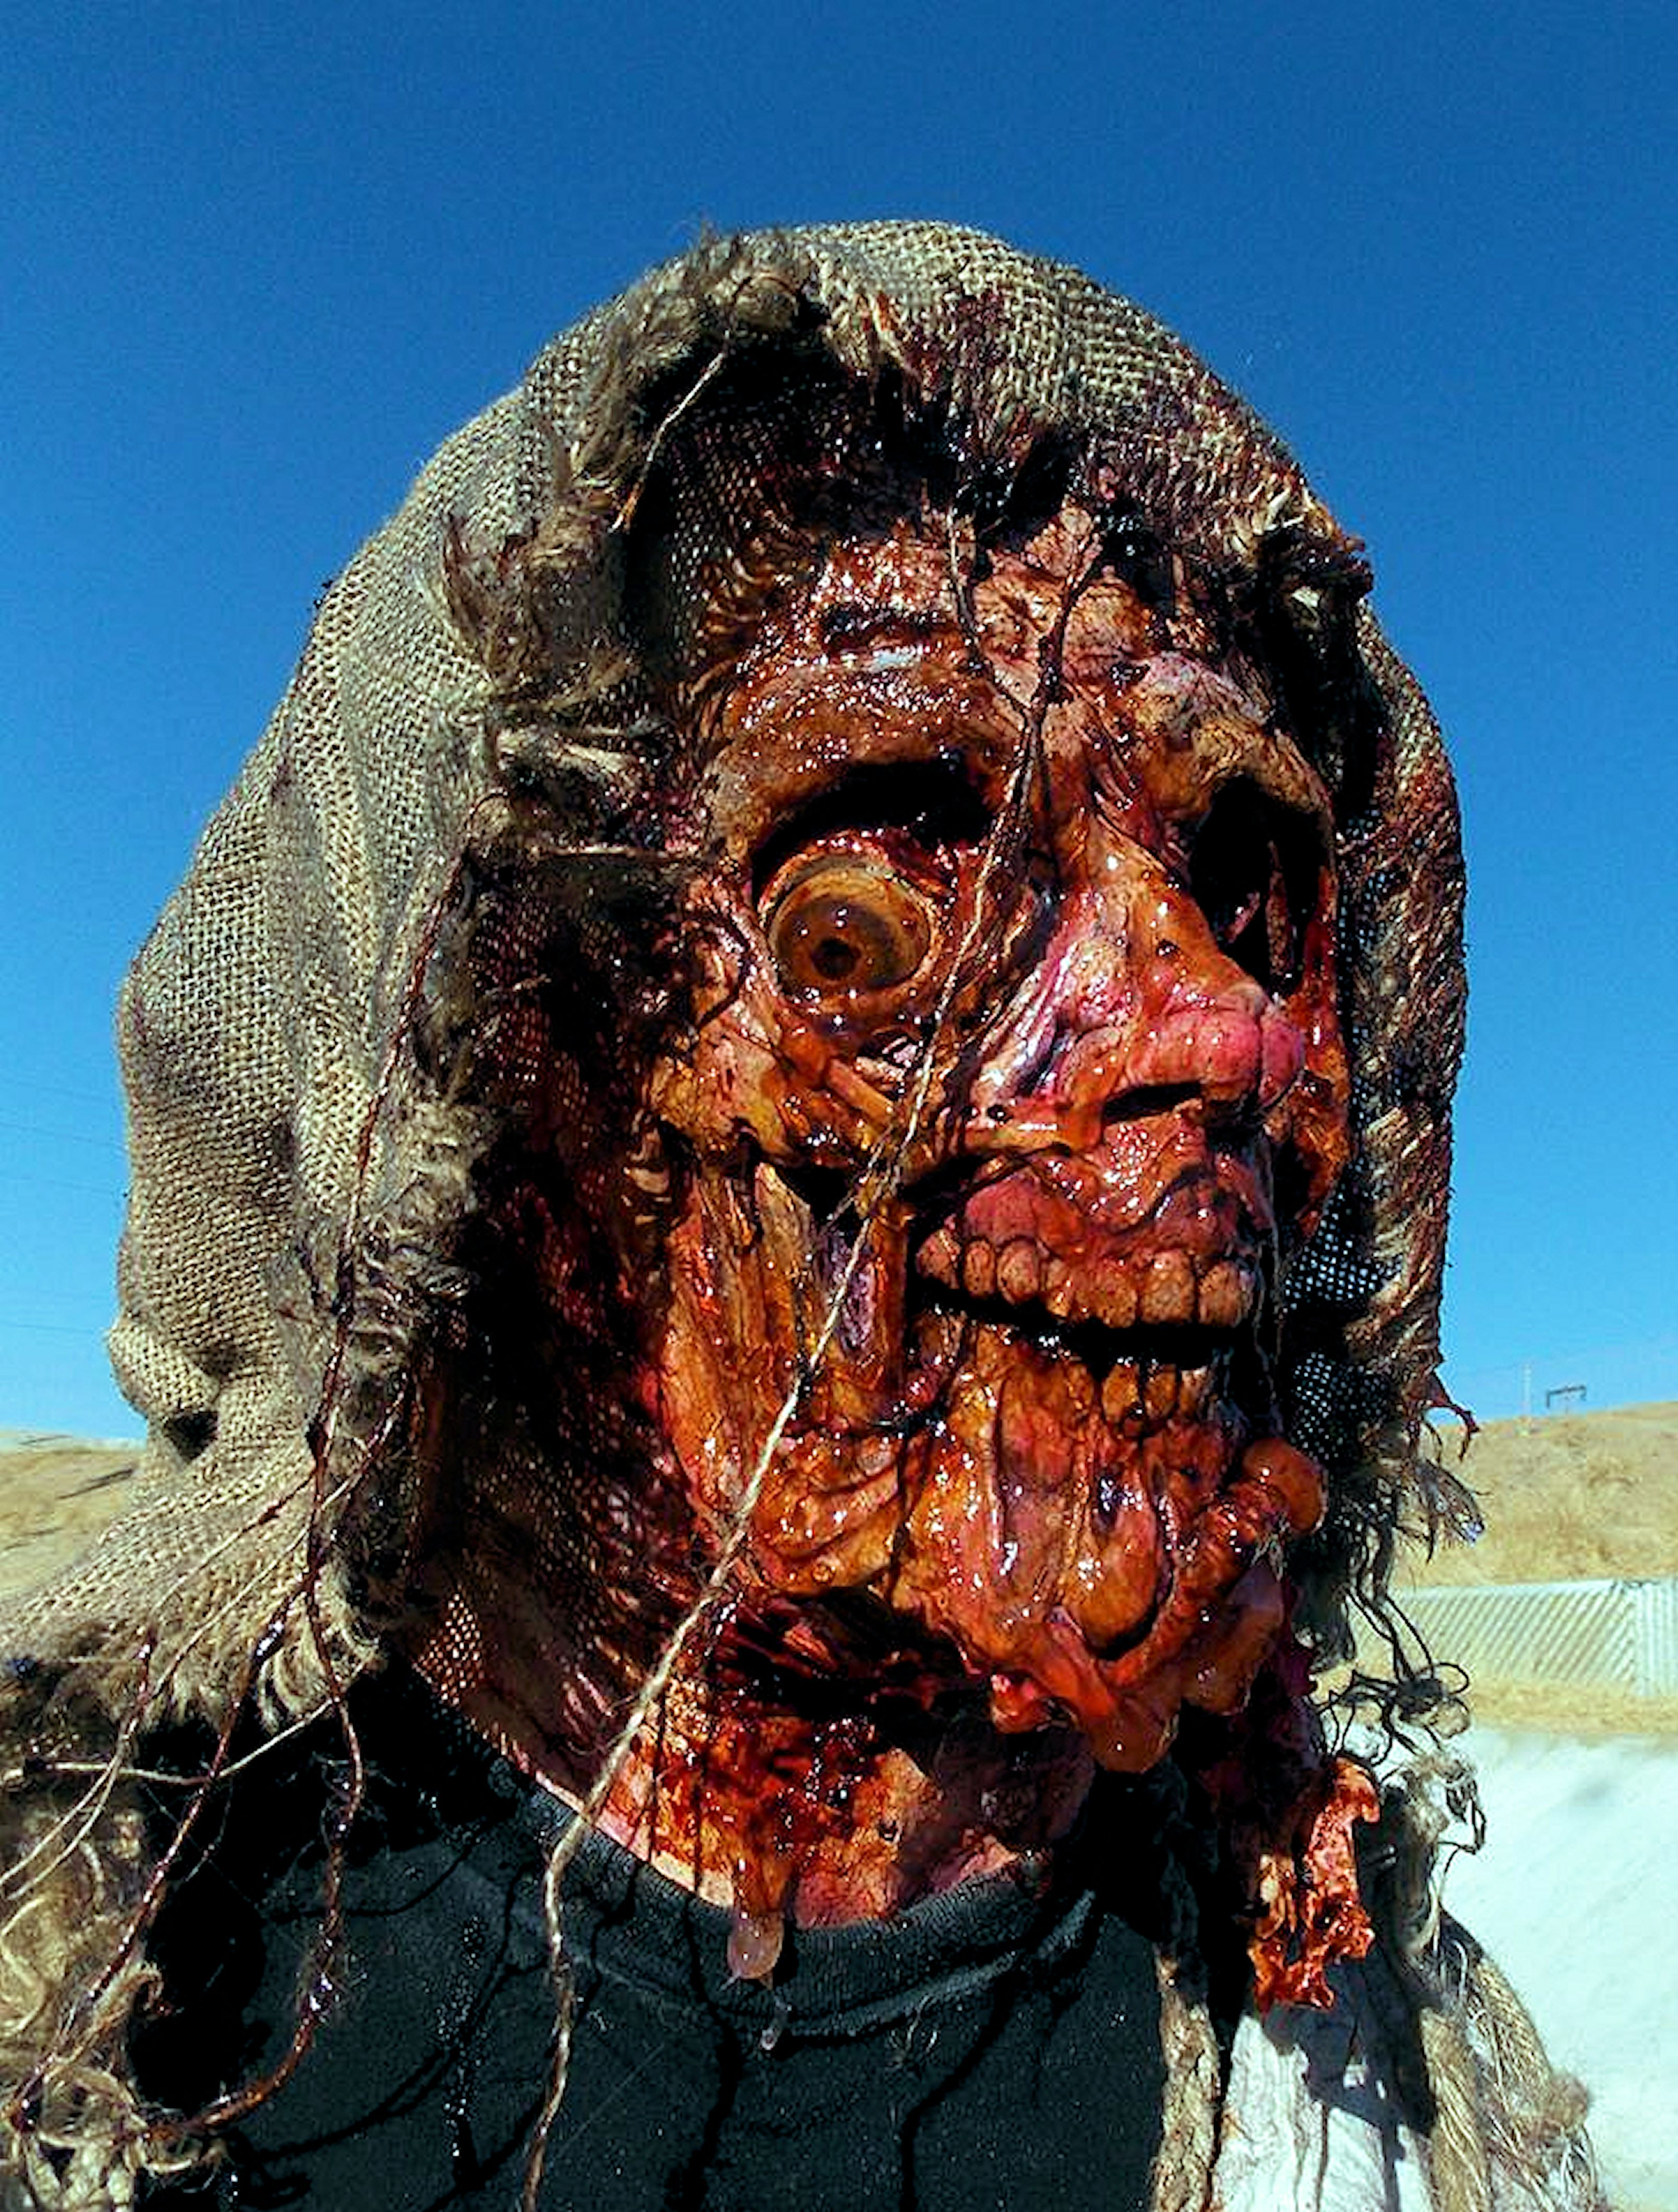 V/H/S Viral Behind-the-Scenes Images